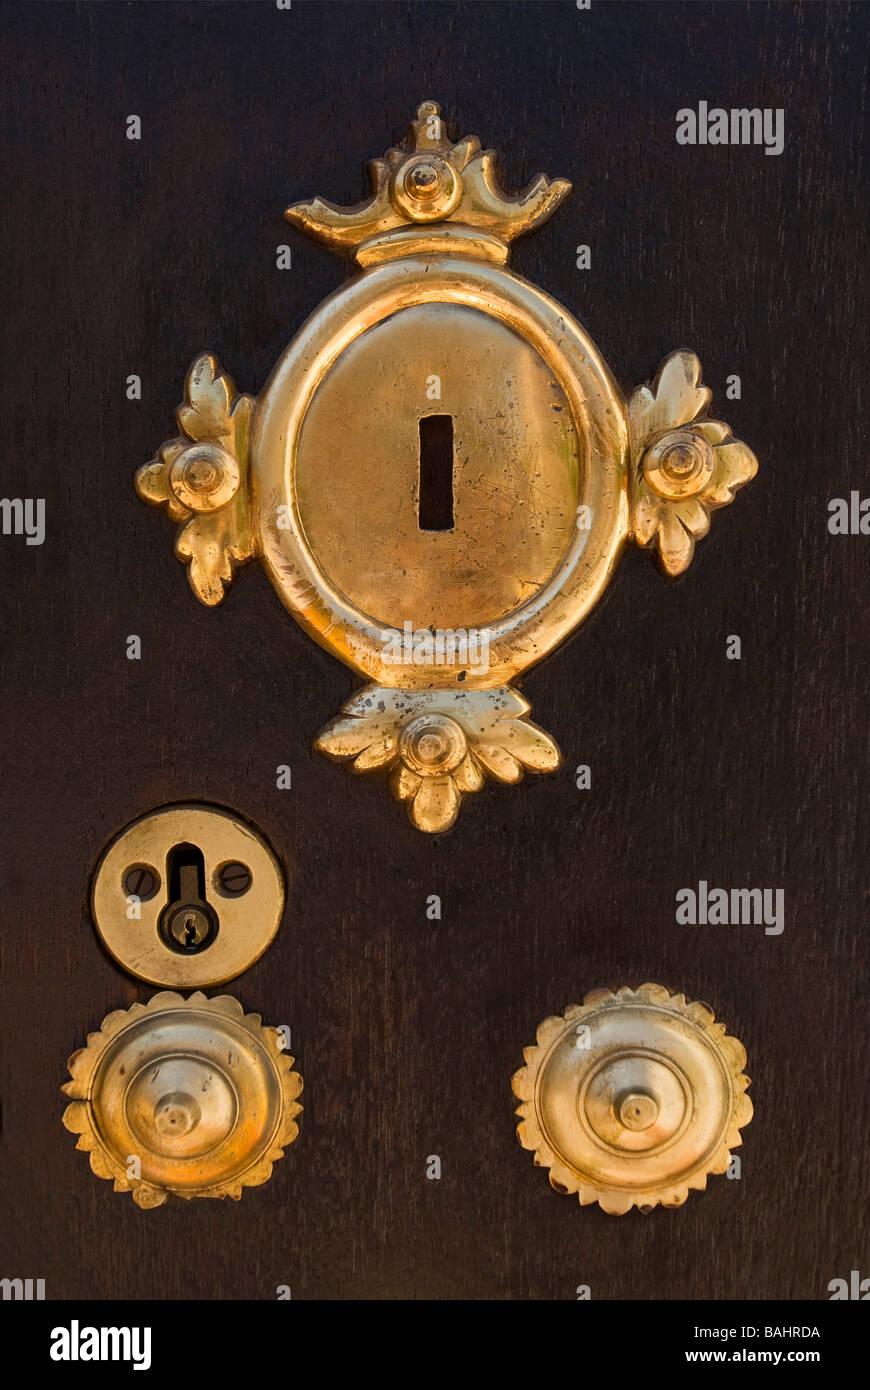 Brass key plates on wooden door & Brass key plates on wooden door Stock Photo Royalty Free Image ...